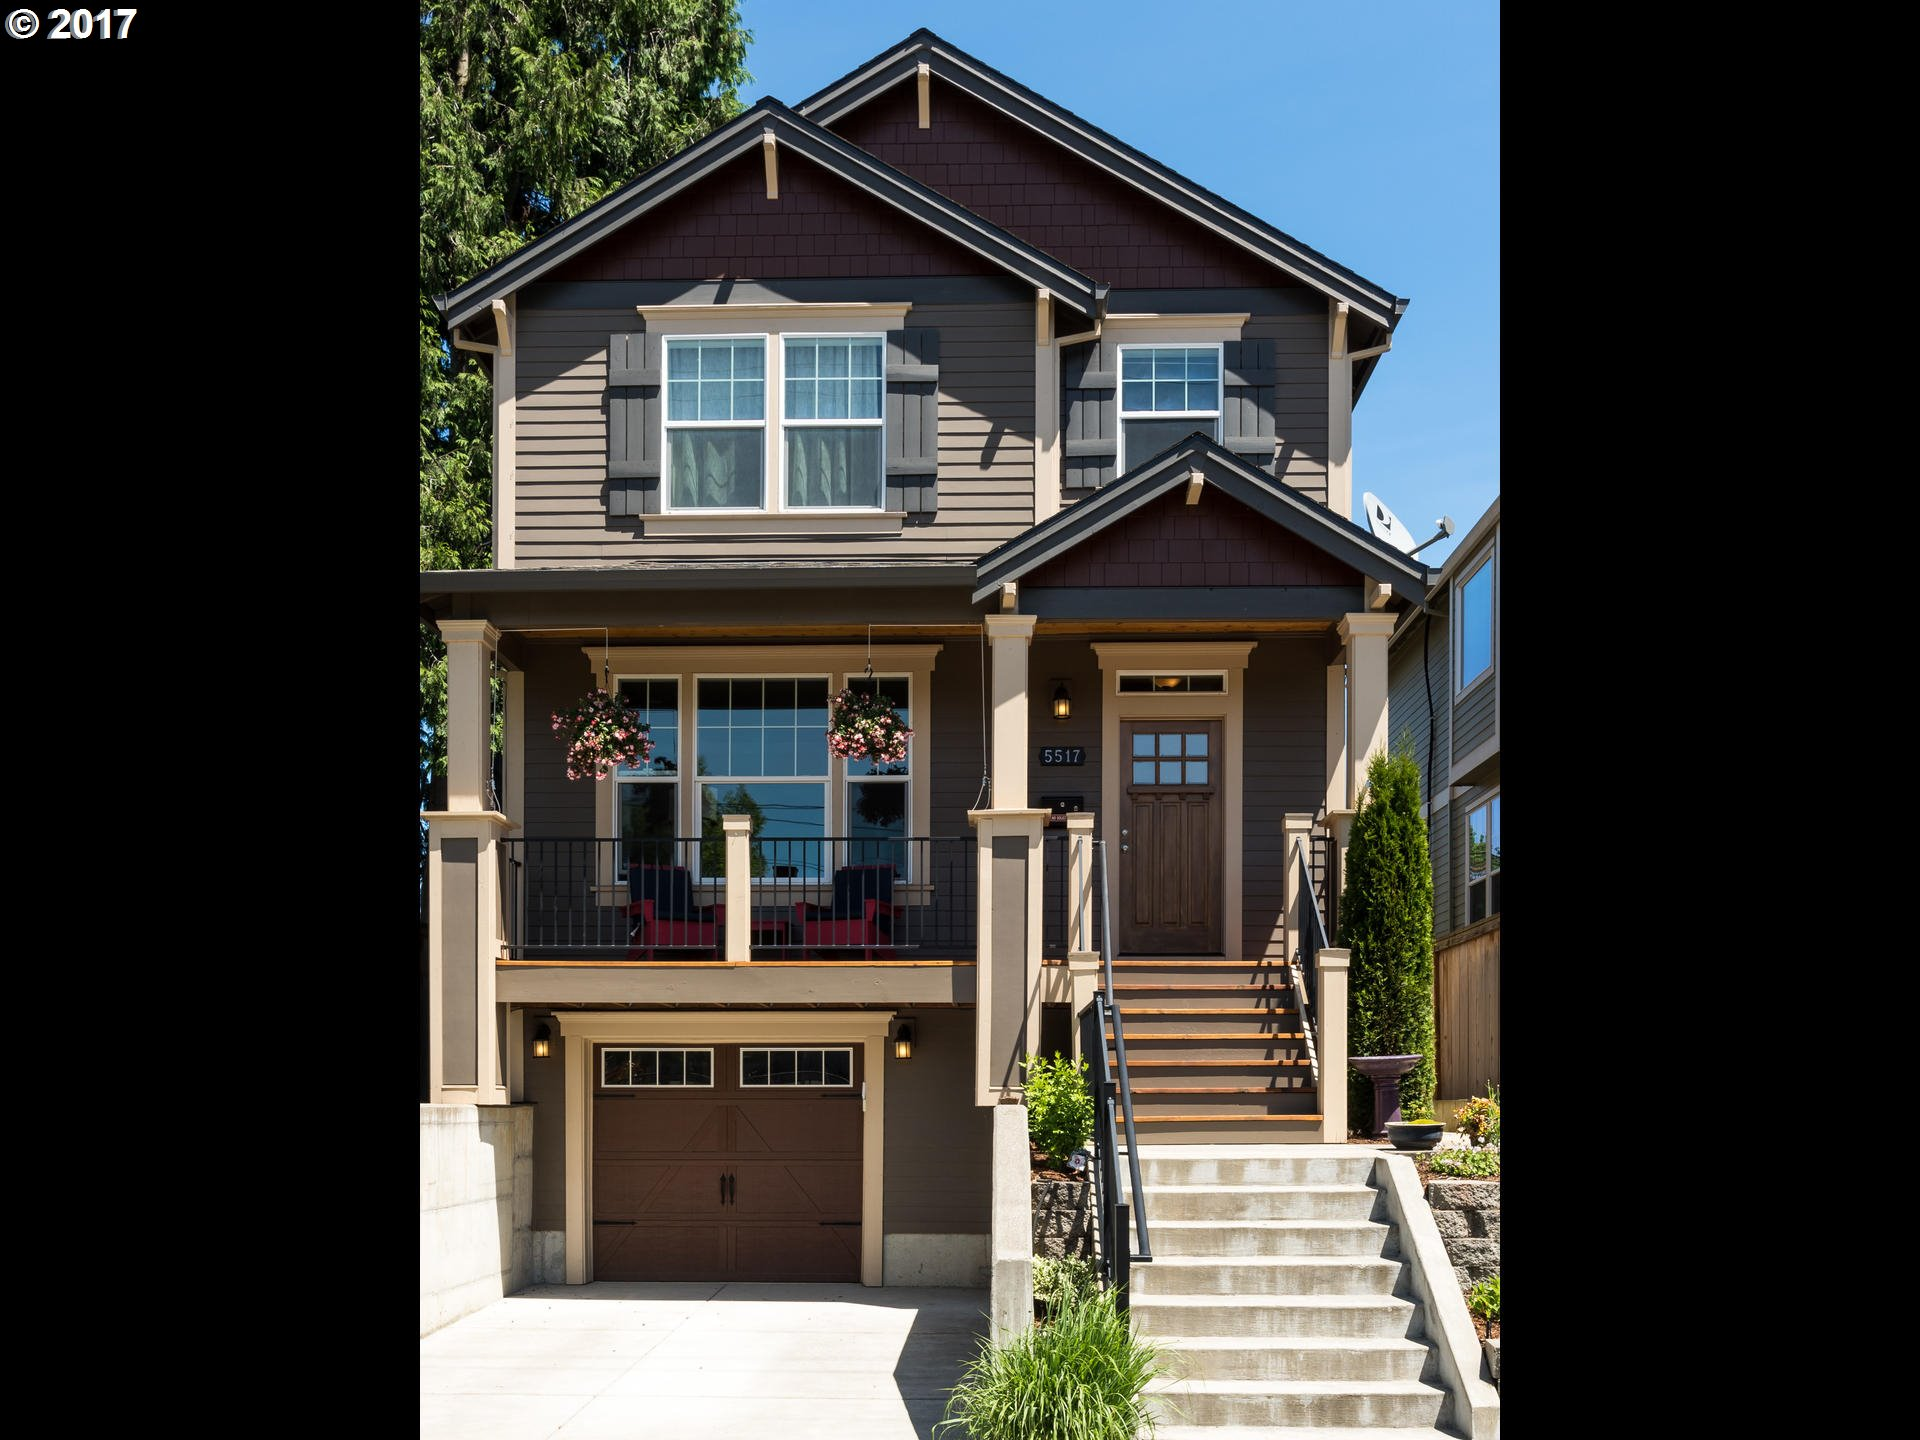 Immaculately maintained 2013 craftsman loaded with upgrades. Open living layout makes entertaining ease, Ss Appl, quartz counters, wood floors, upgraded lighting, ample storage, dual zoned heating/AC. Lower lvl guest suite w/separate entrance. Two covered porches with a fenced yard provide yr round enjoyment. Close to St Johns, 10 min. into downtown, walk dis to New Seasons, restaurants, coffee, kids playground at your fingertips.